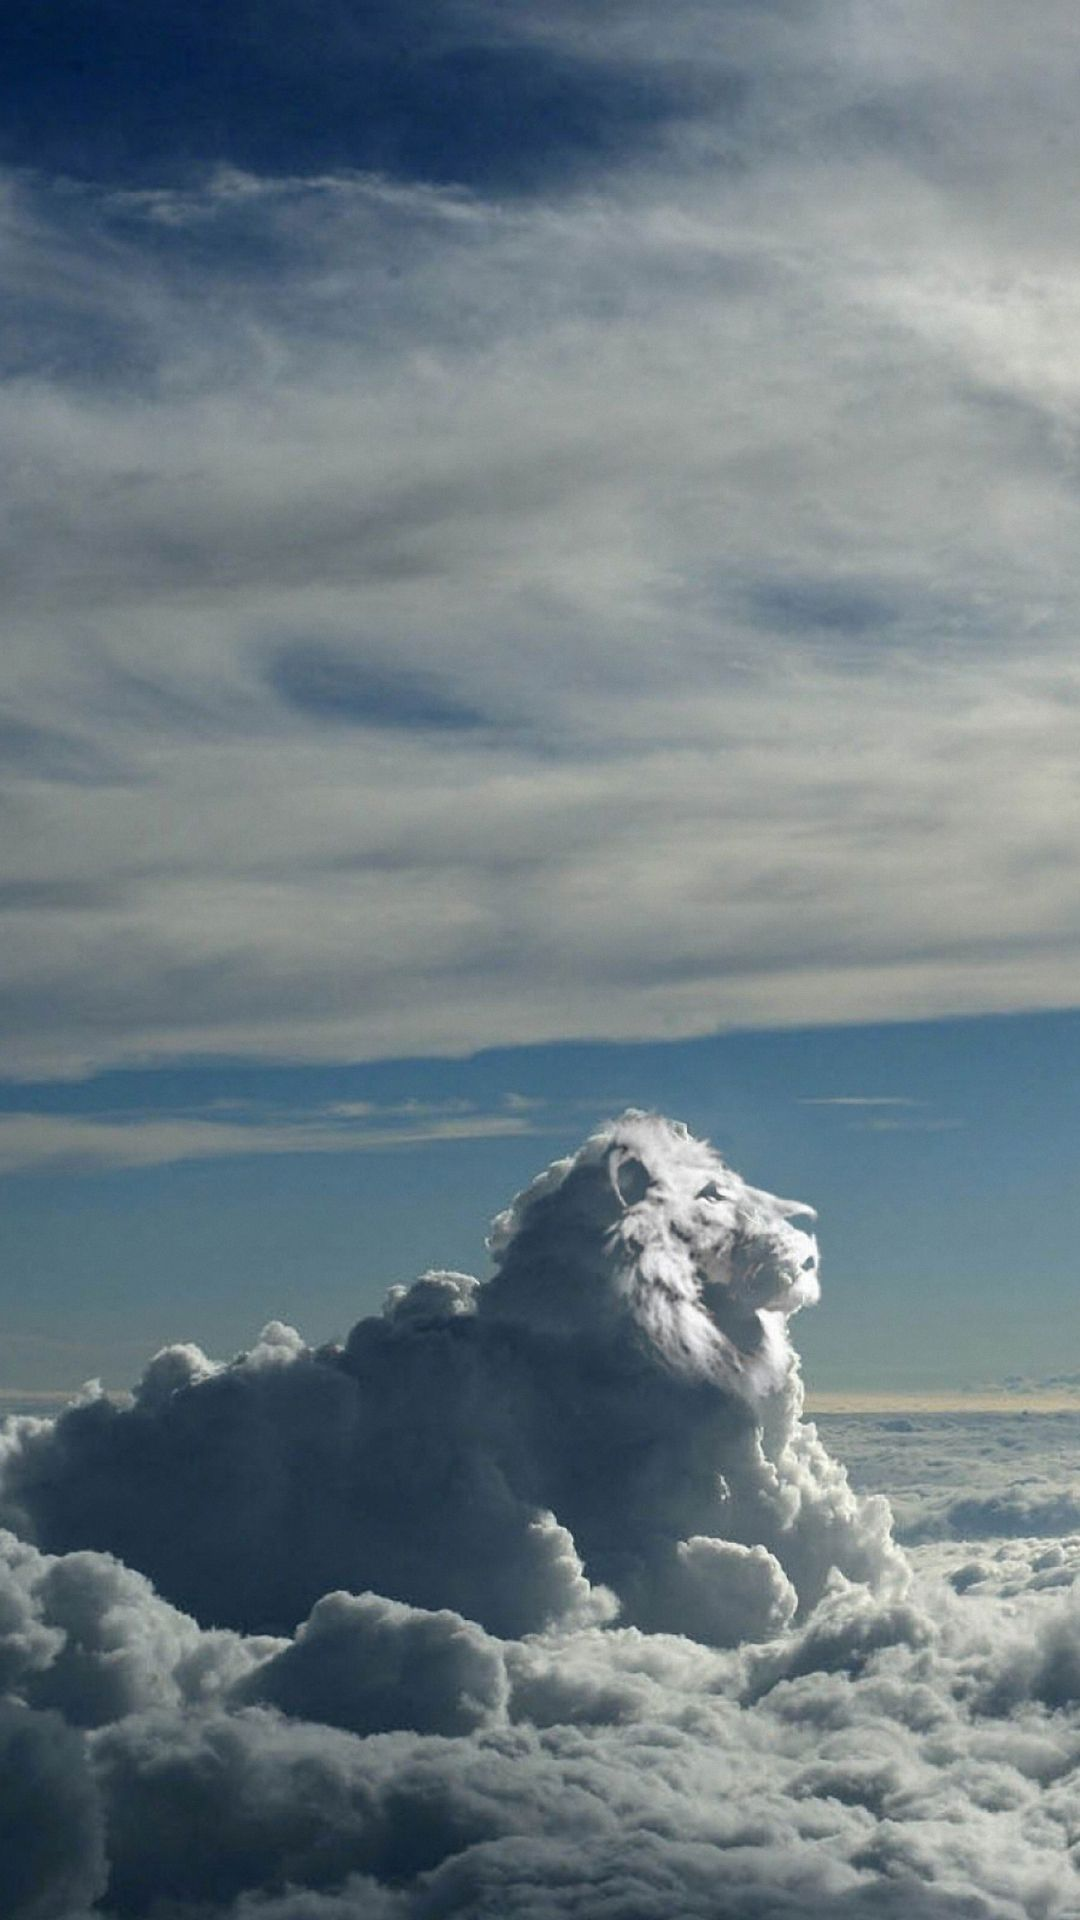 1080x1920 wallpaper.wiki-Cheetah-Clouds-Wallpaper-for-Phone-PIC-WPC006986 ...